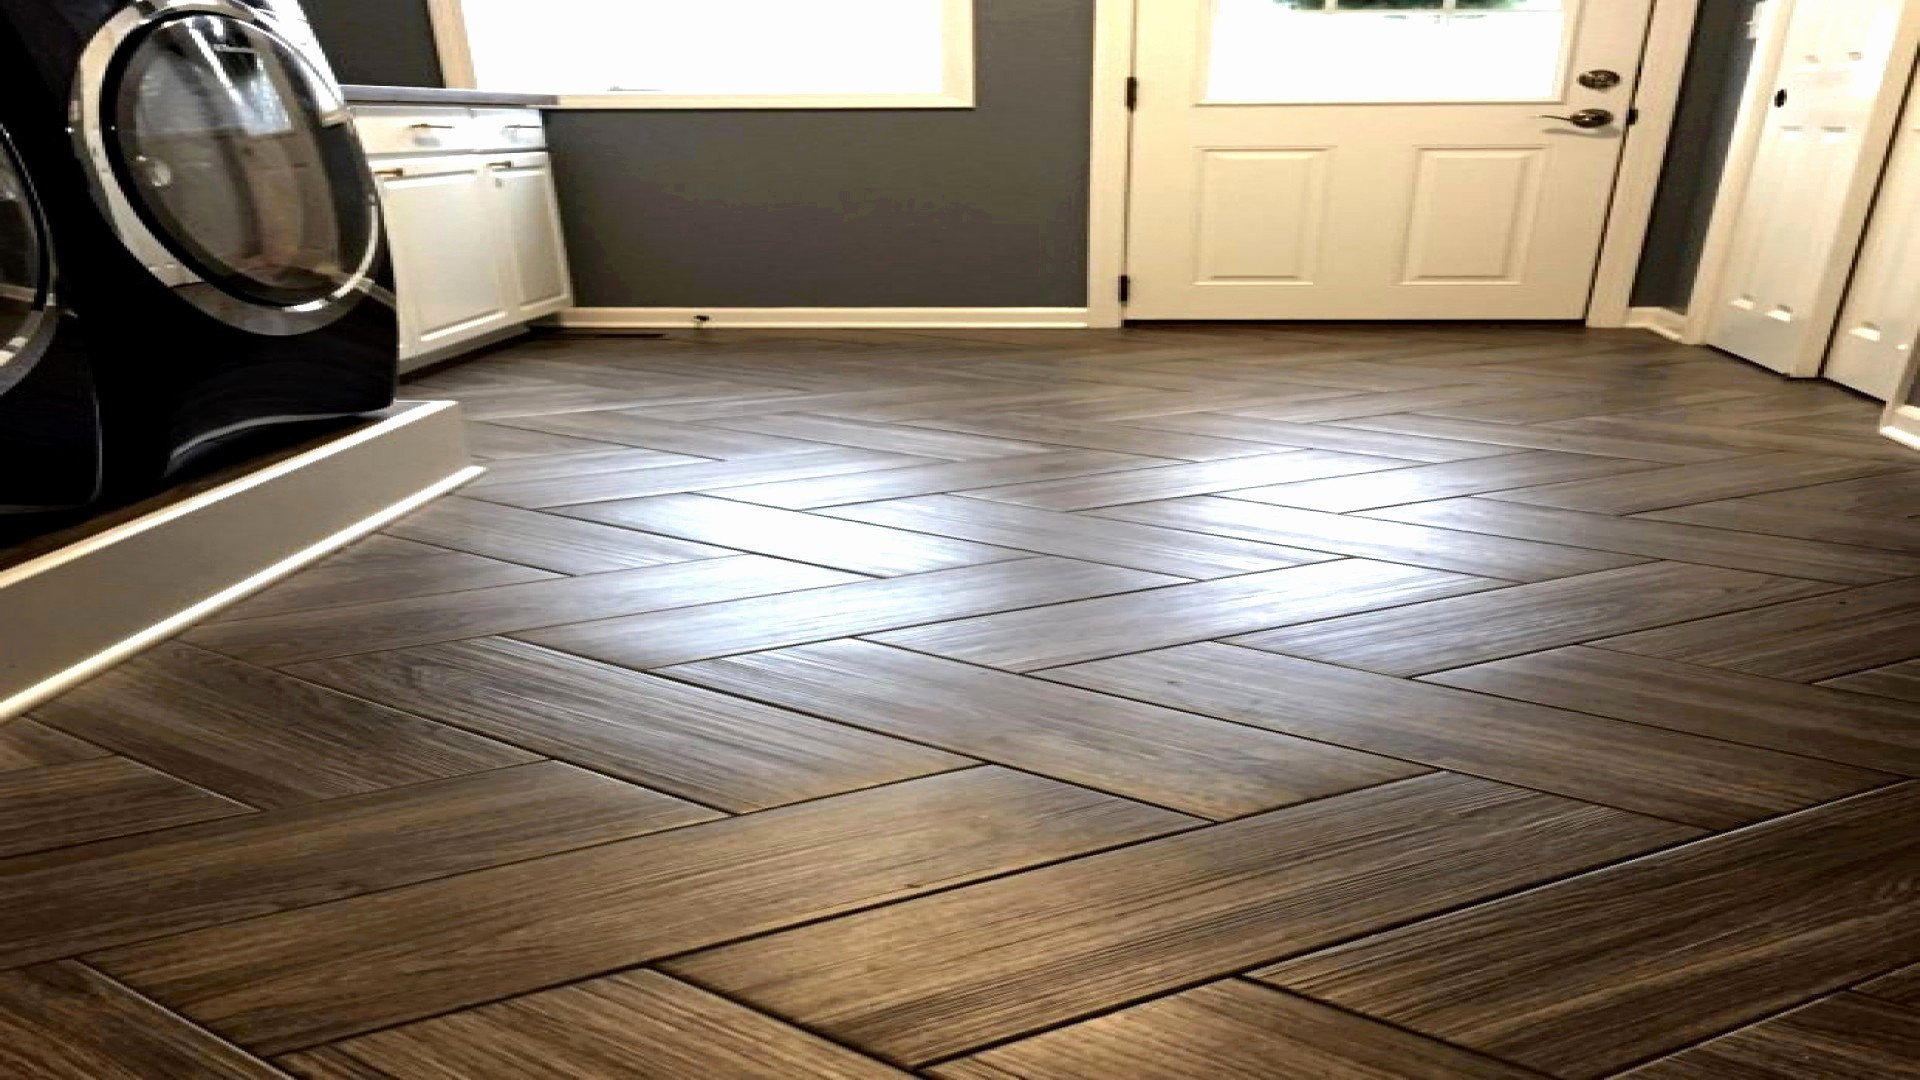 hardwood flooring st louis mo of 19 awesome hardwood flooring for sale photograph dizpos com with hardwood flooring for sale best of 52 luxury wood flooring sale 52 s photograph